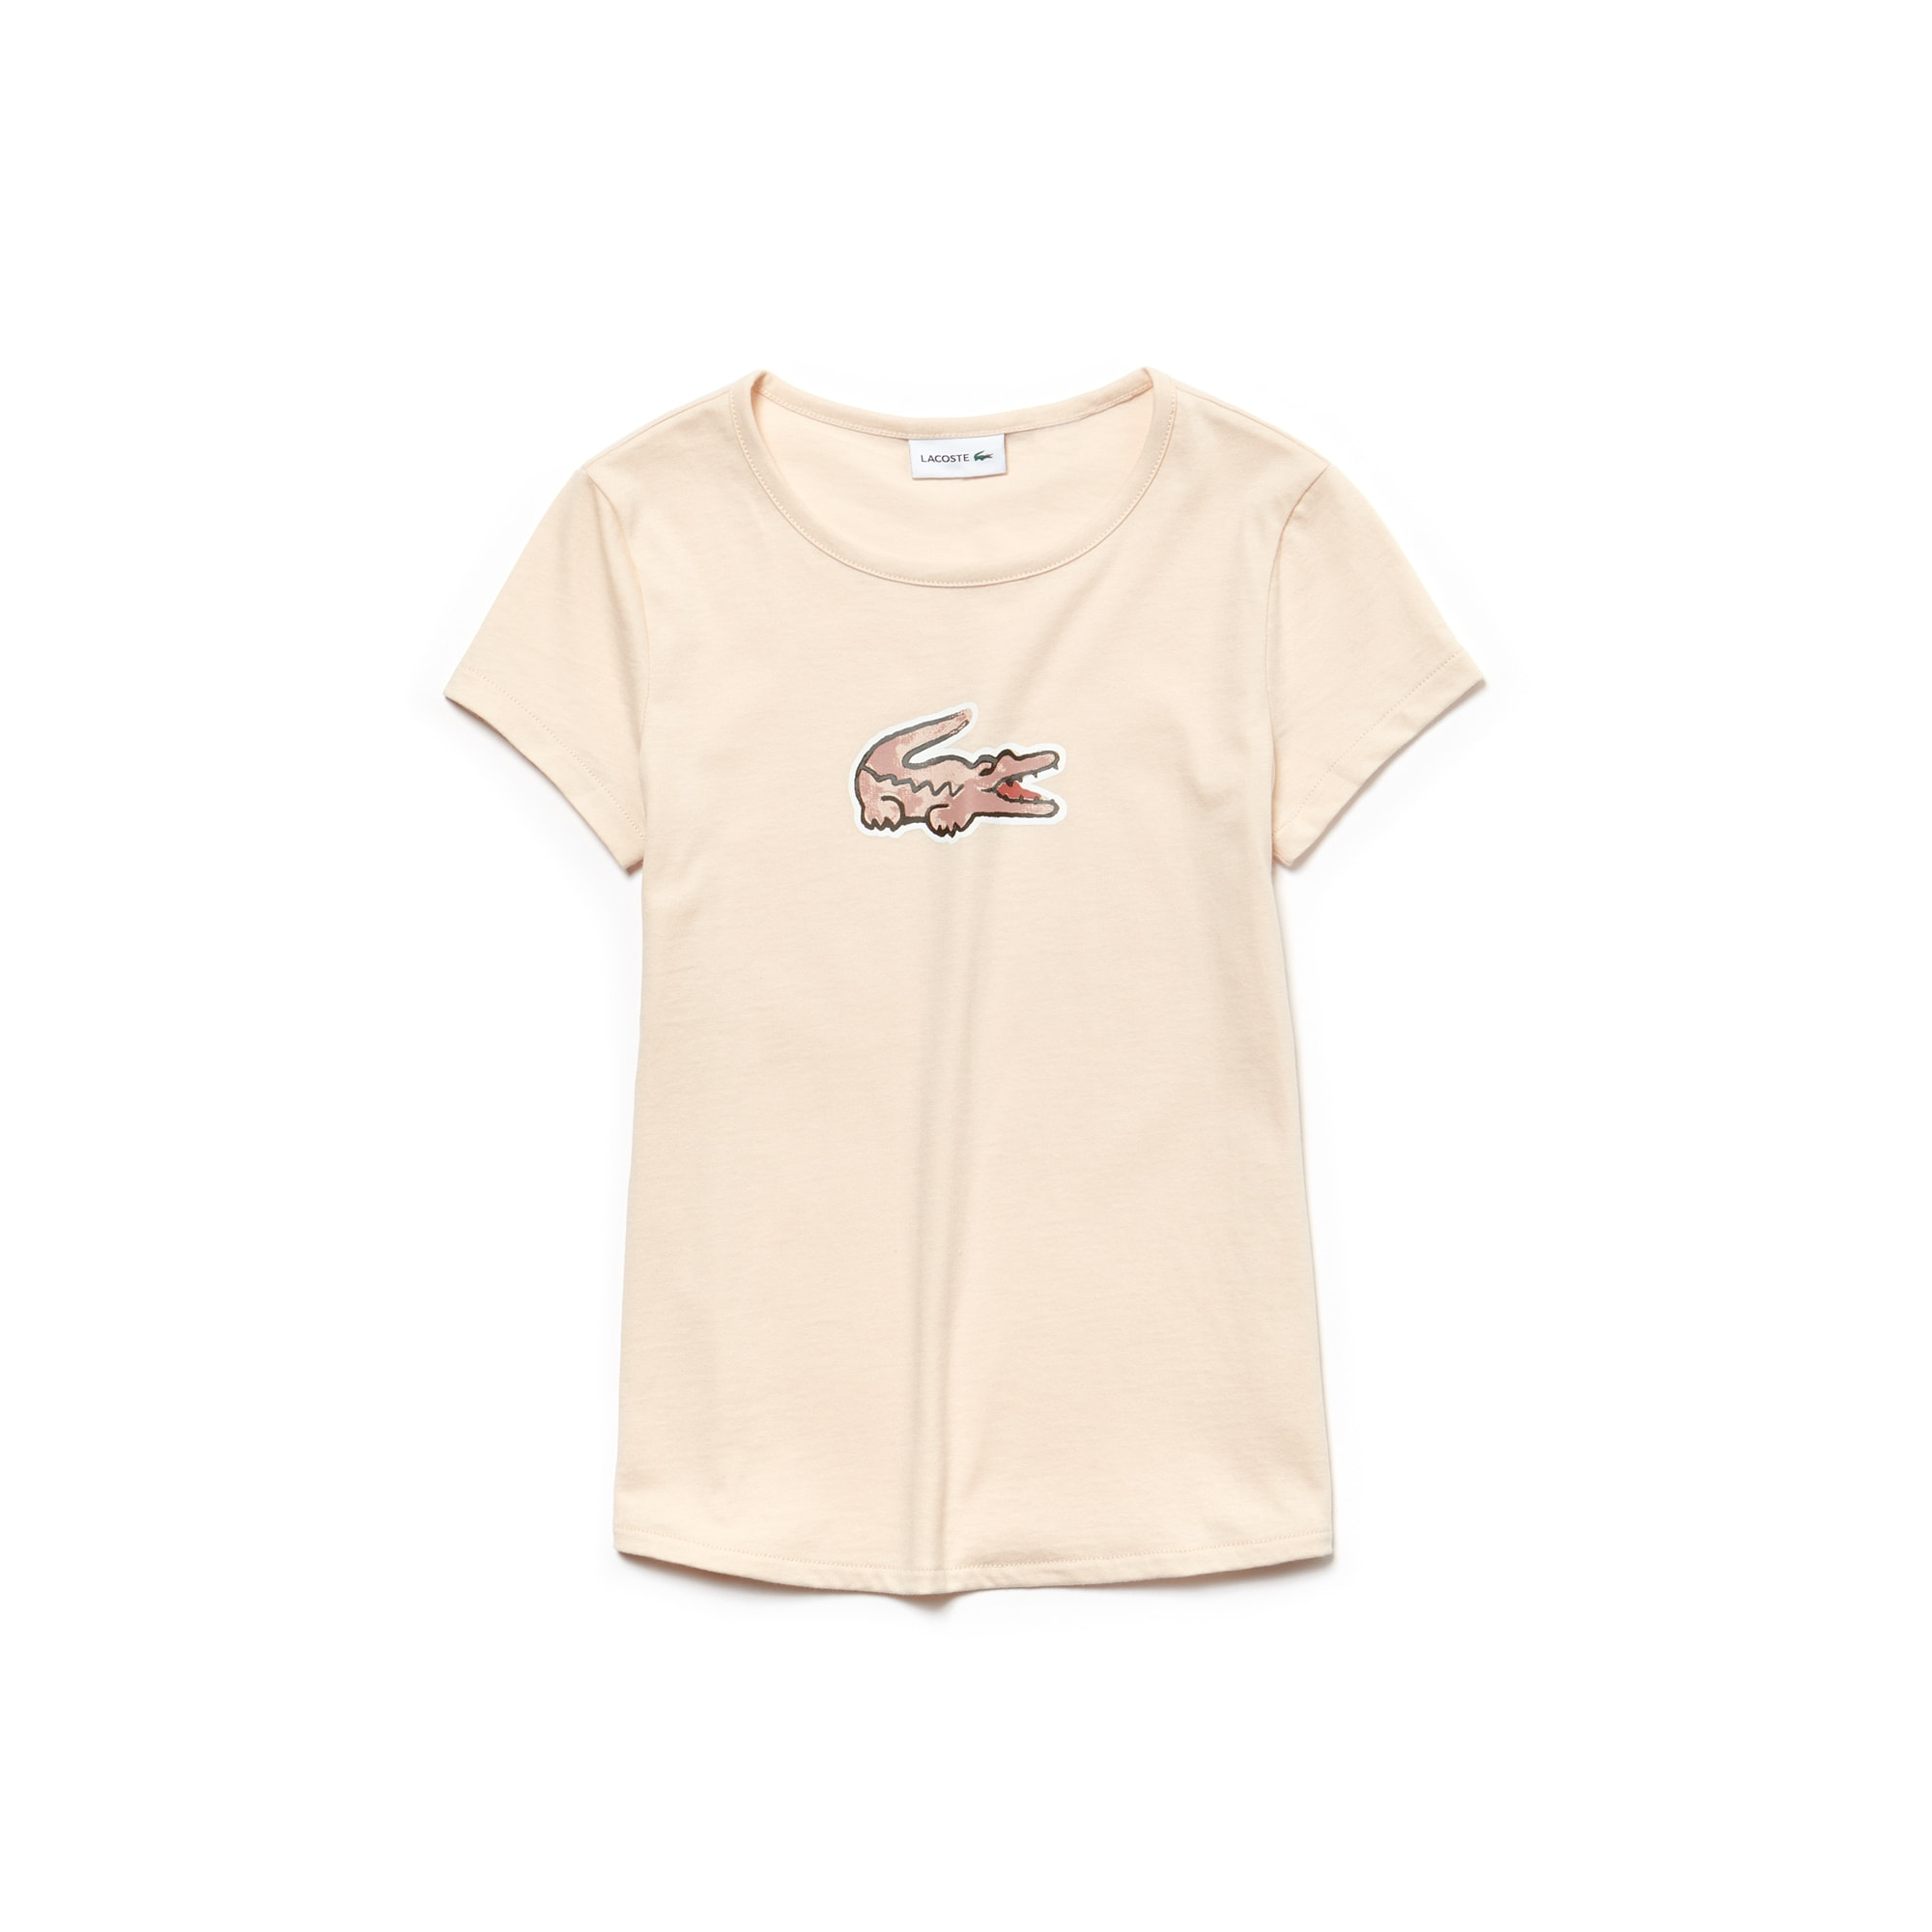 Girls' Crew Neck Crocodile Print Jersey T-shirt